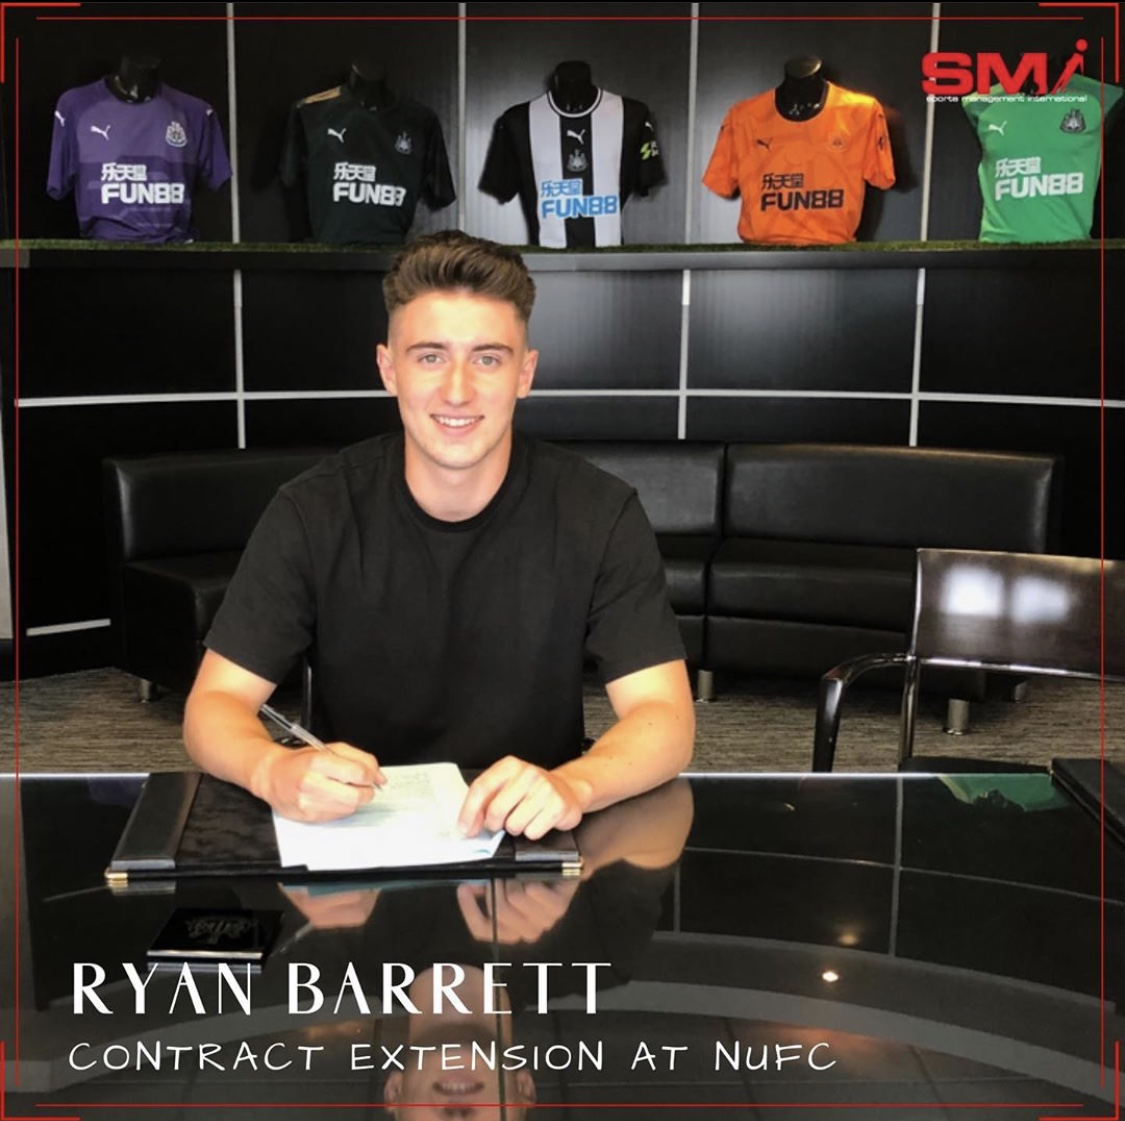 Ryan Barrett contract extension at NUFC